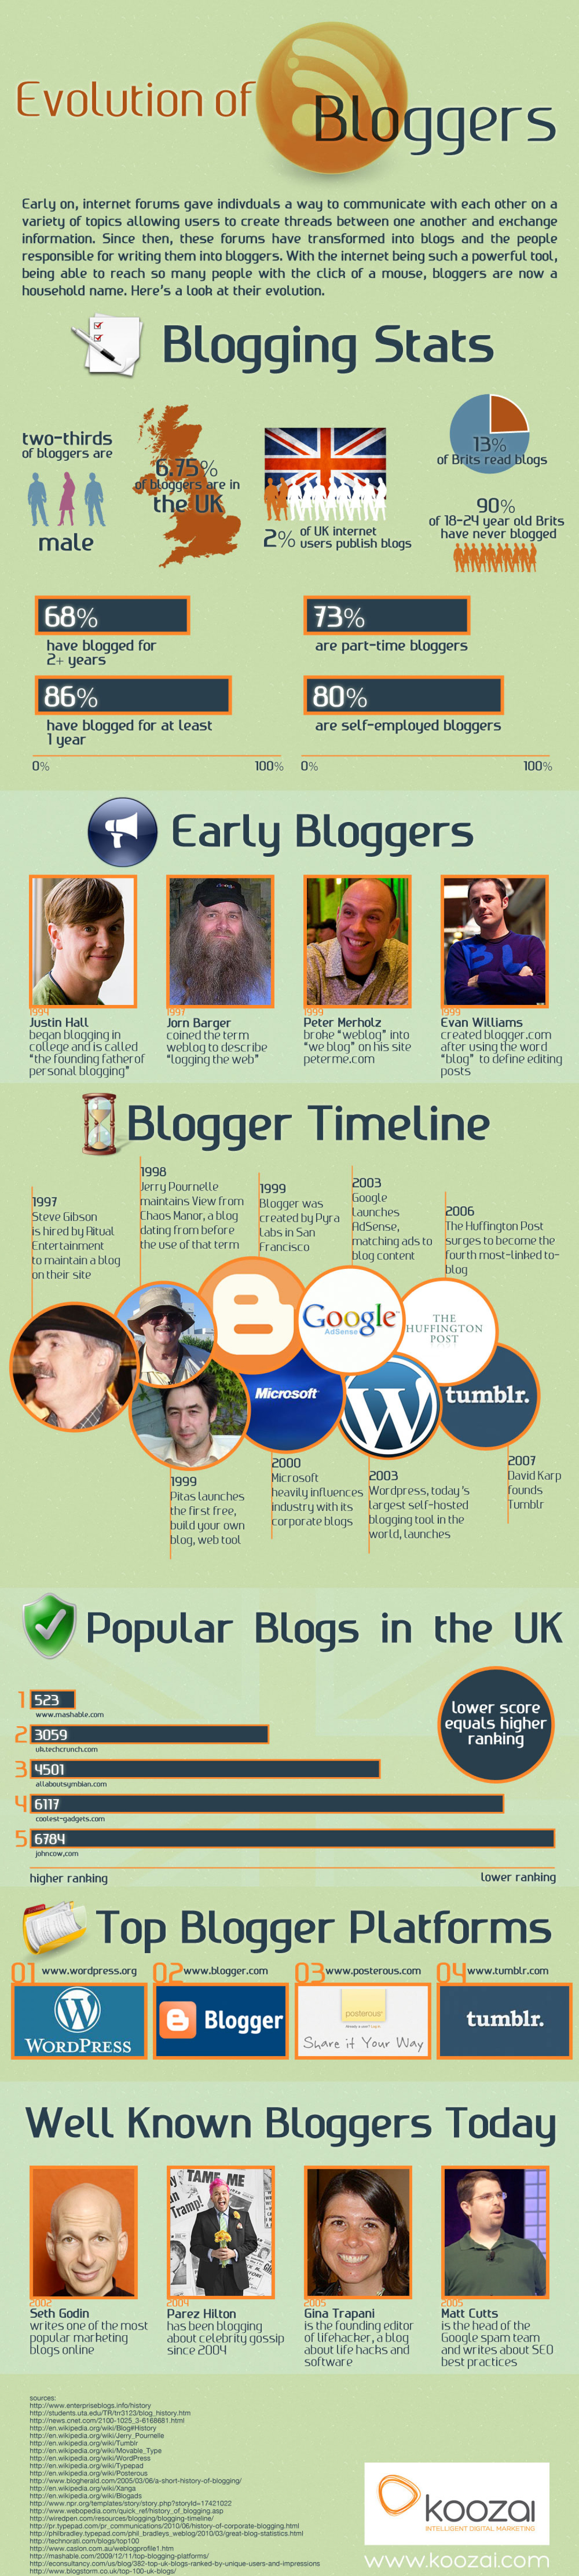 The Evolution of Bloggers  Infographic